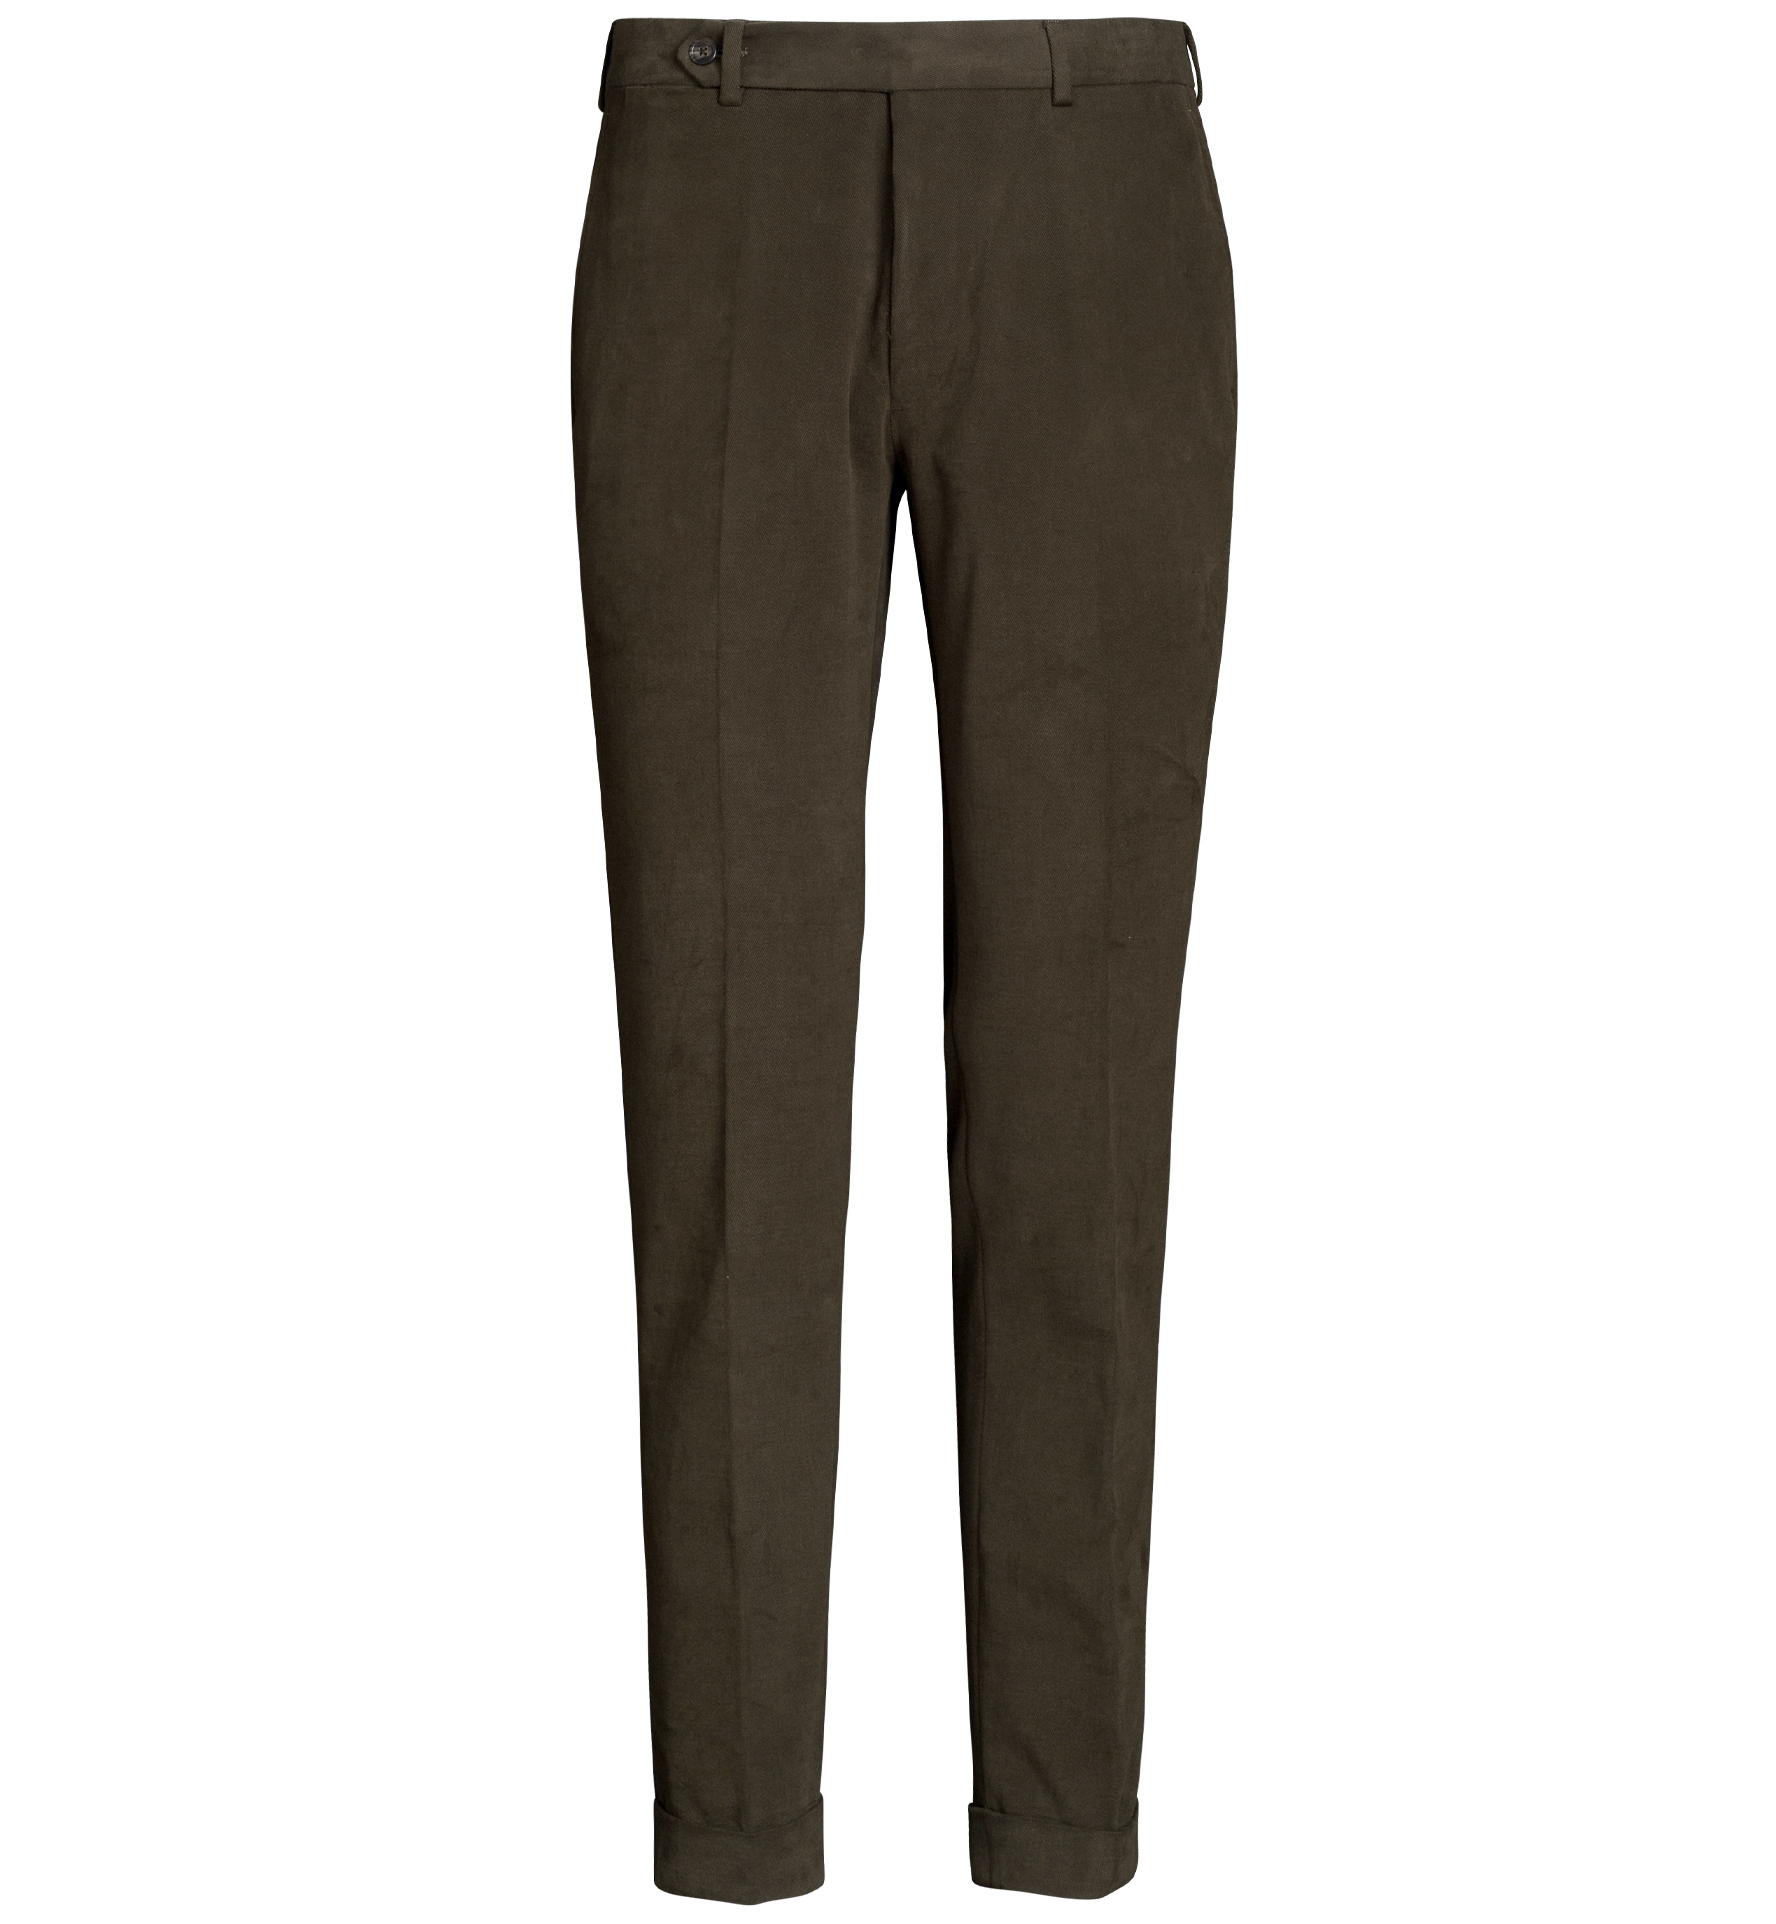 Zoom Image of Allen Olive Heavy Stretch Cotton Twill Trouser